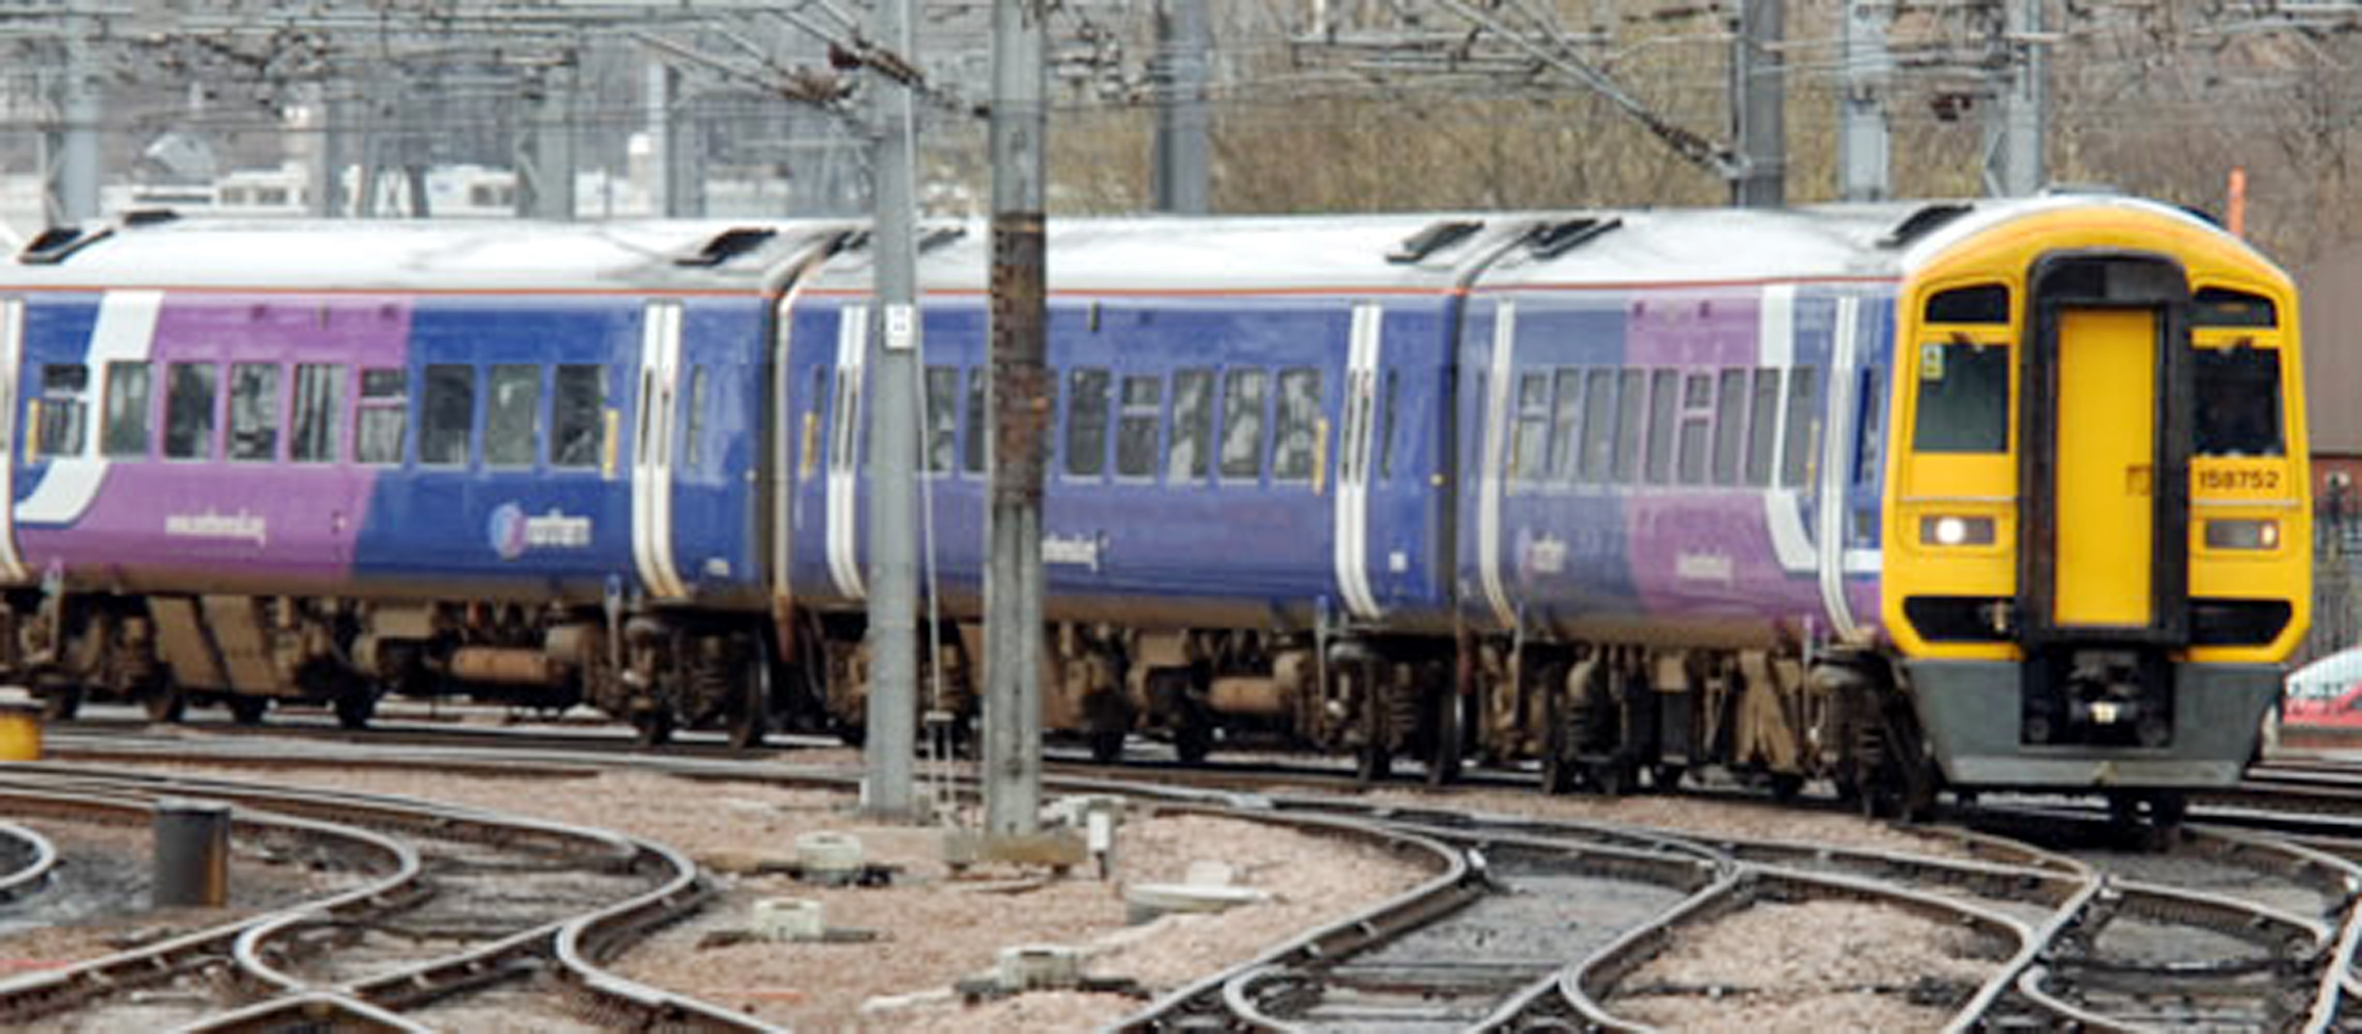 Government announces firms in frame to run Mid Cheshire's trains